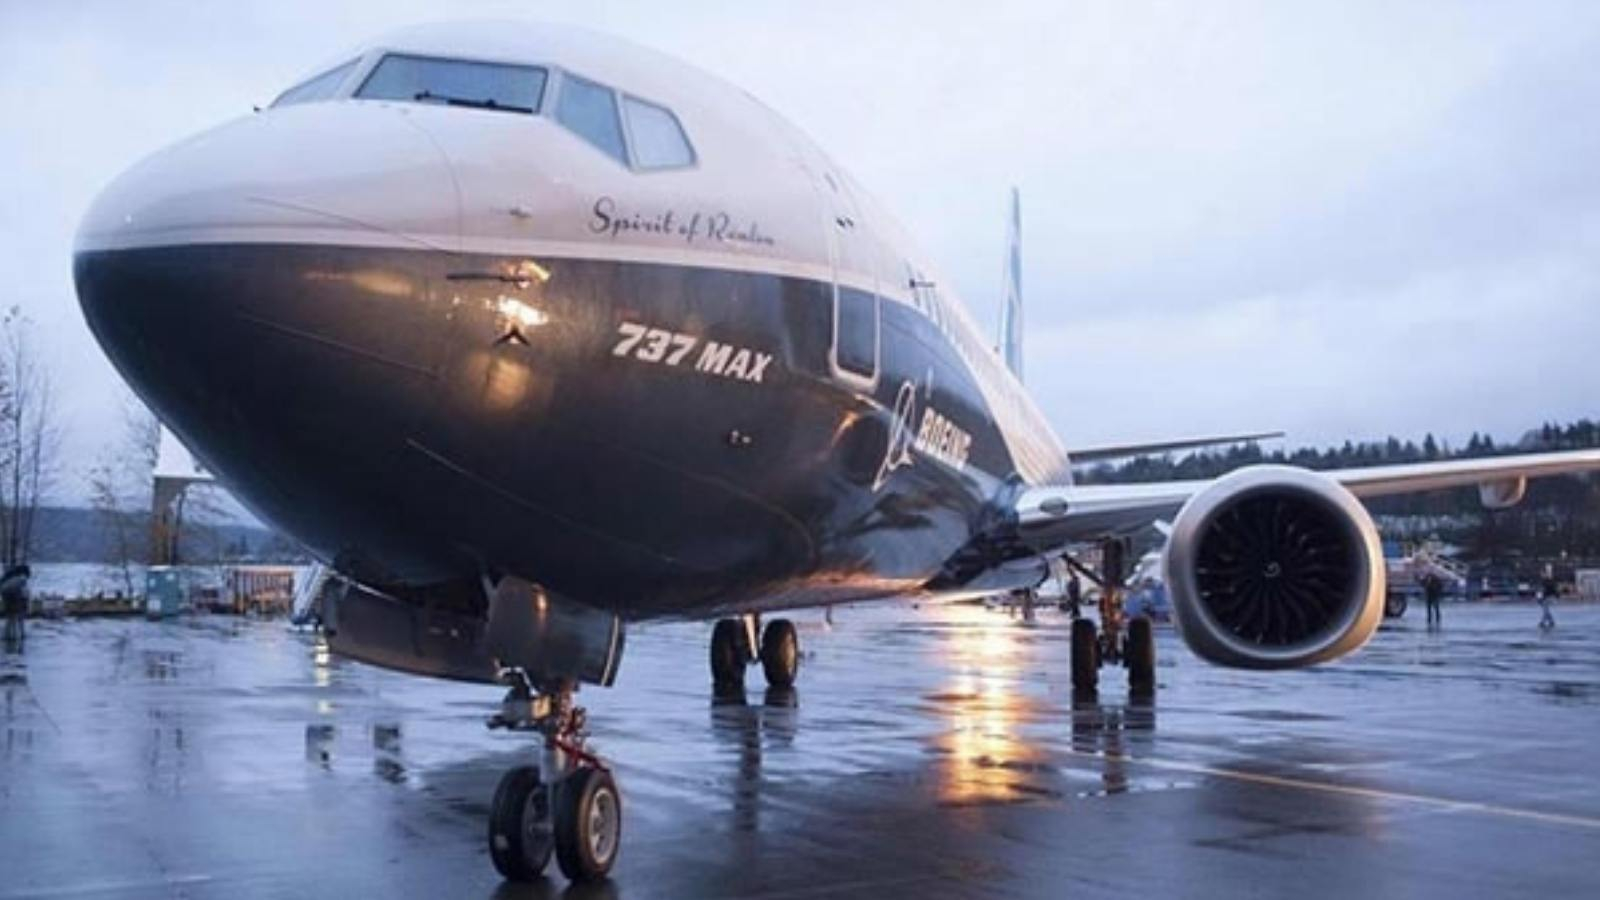 What's left for Boeing after three fatal crashes?